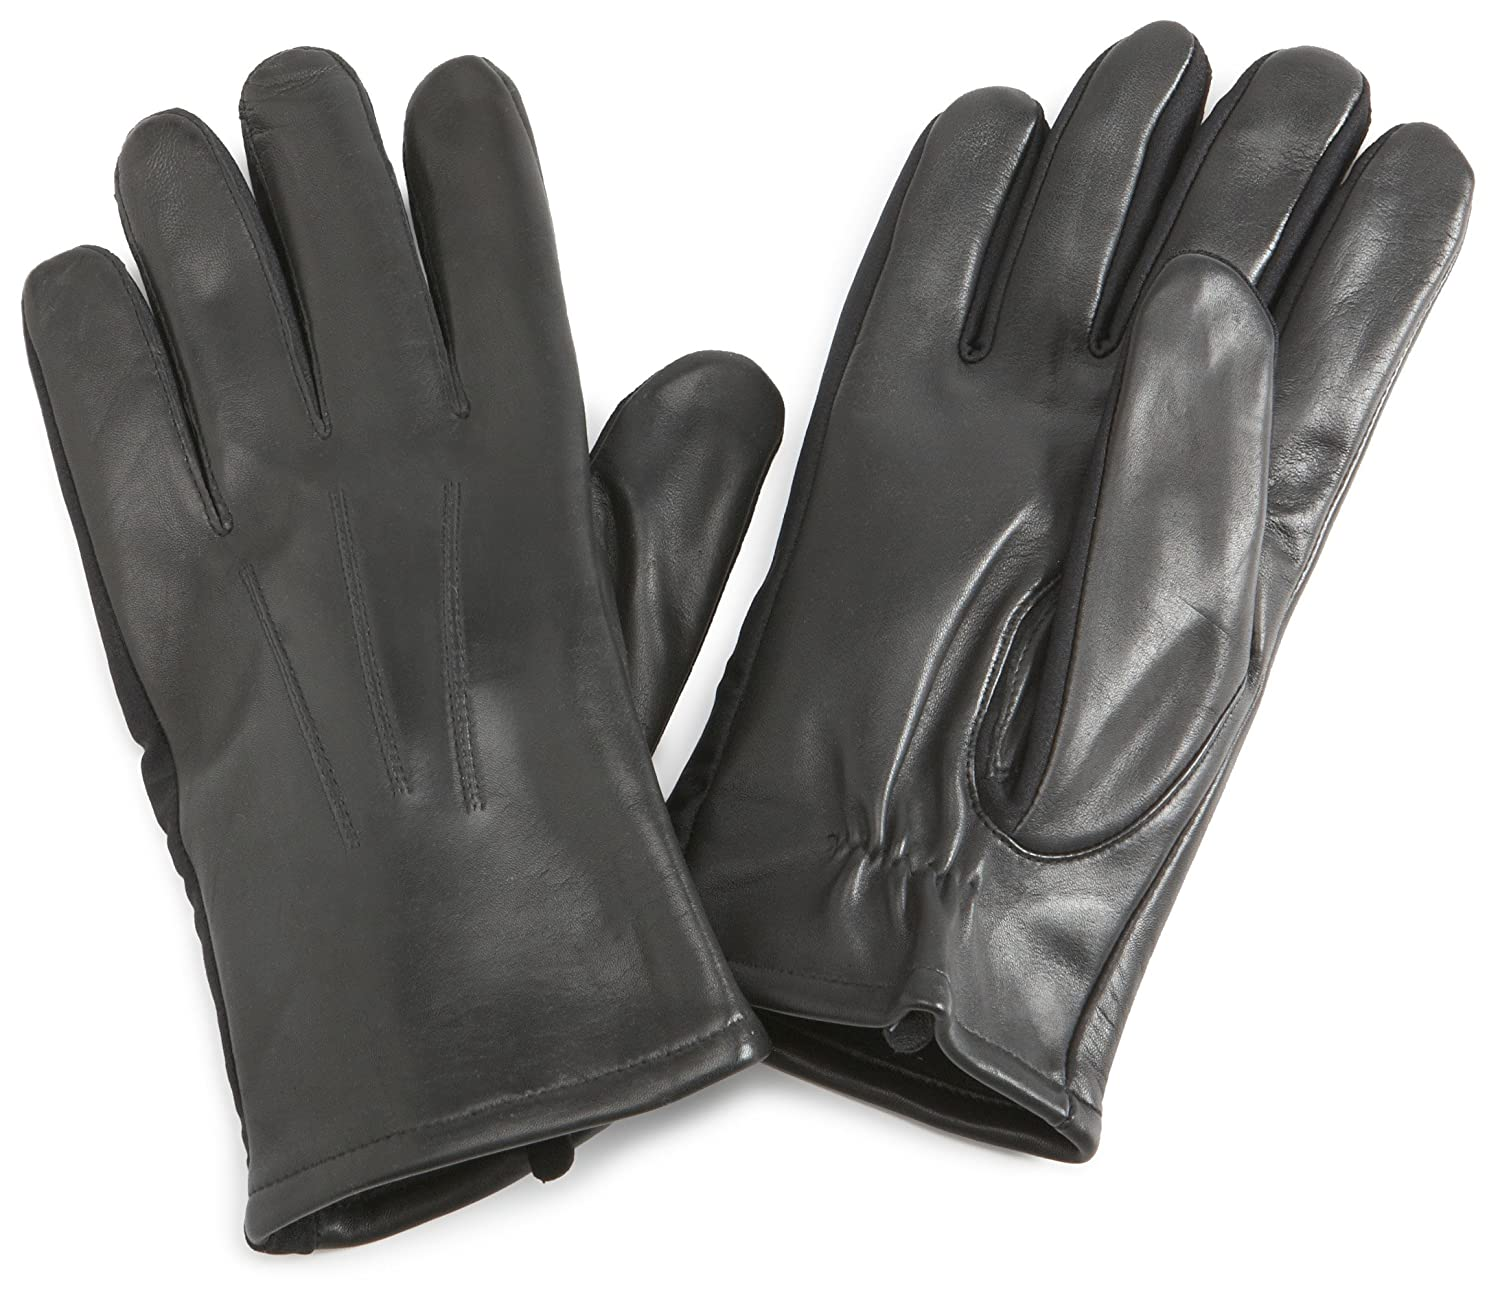 Mens gloves isotoner - Isotoner Men S Stretch Leather Glove Black X Large At Amazon Men S Clothing Store Cold Weather Gloves